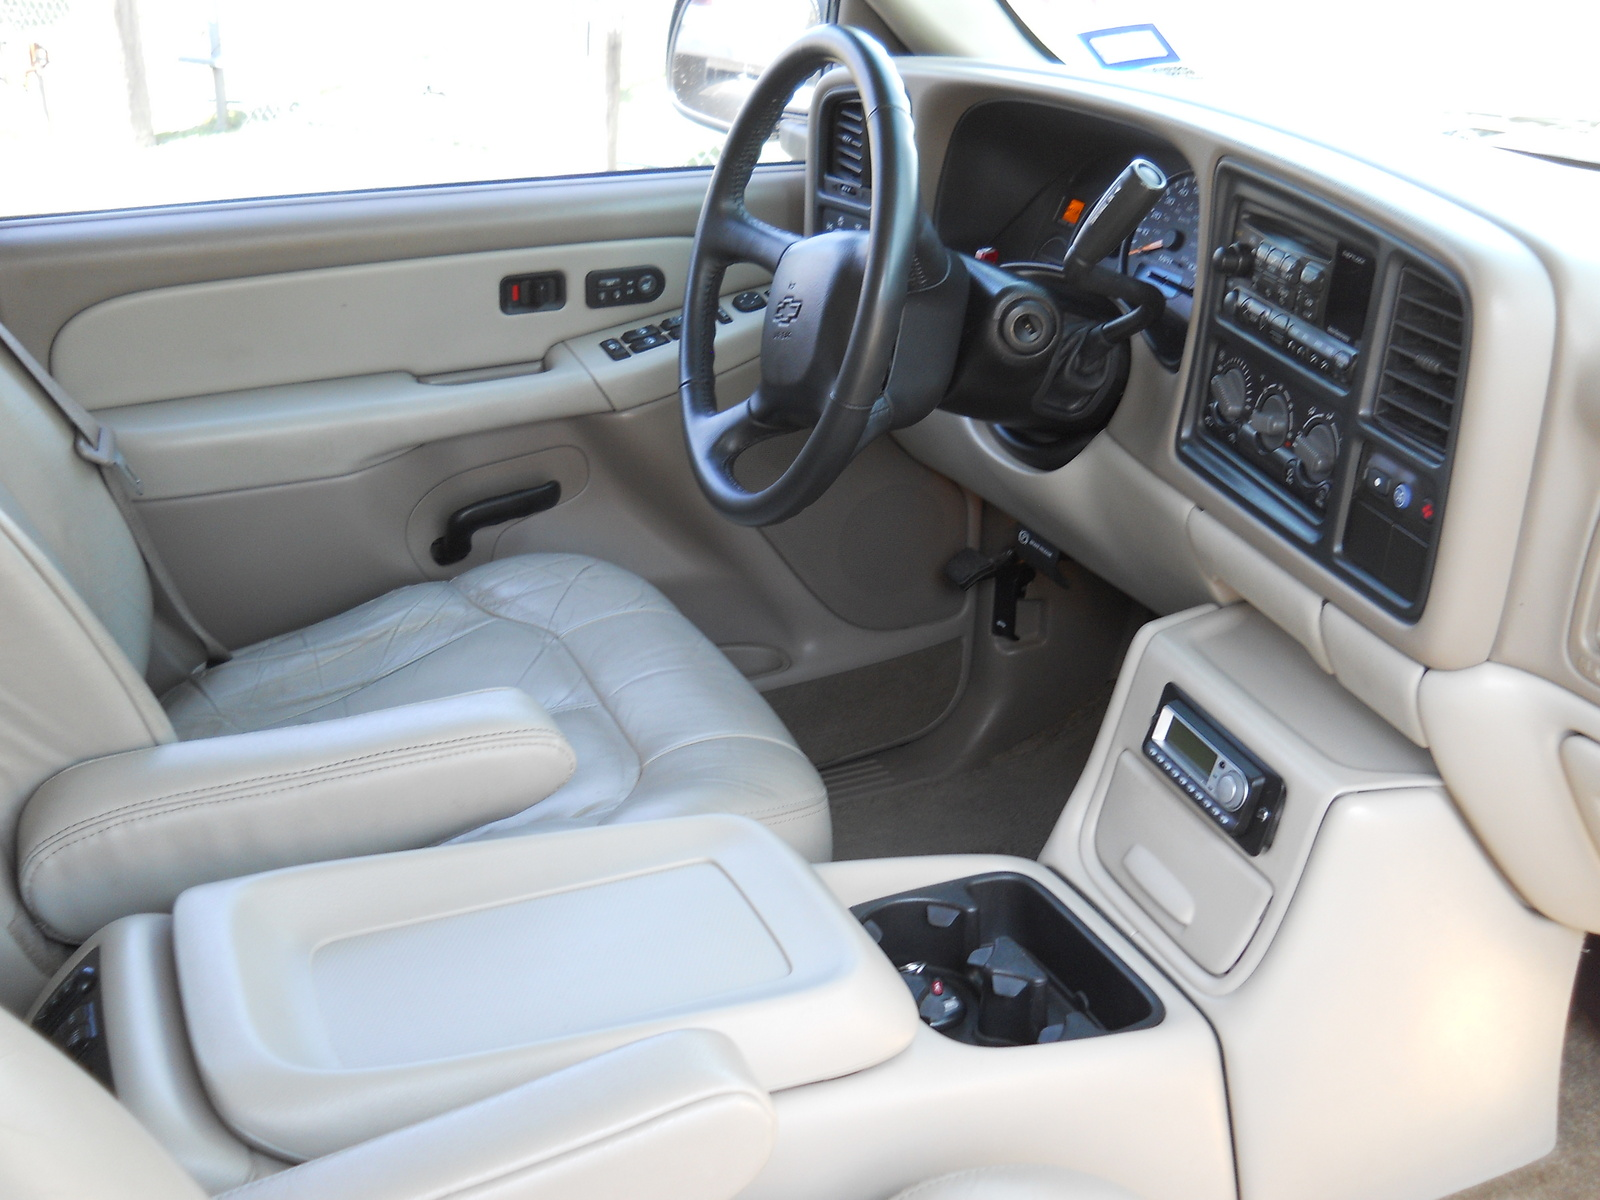 2002 chevrolet tahoe interior pictures to pin on pinterest pinsdaddy for 2001 chevy tahoe interior parts